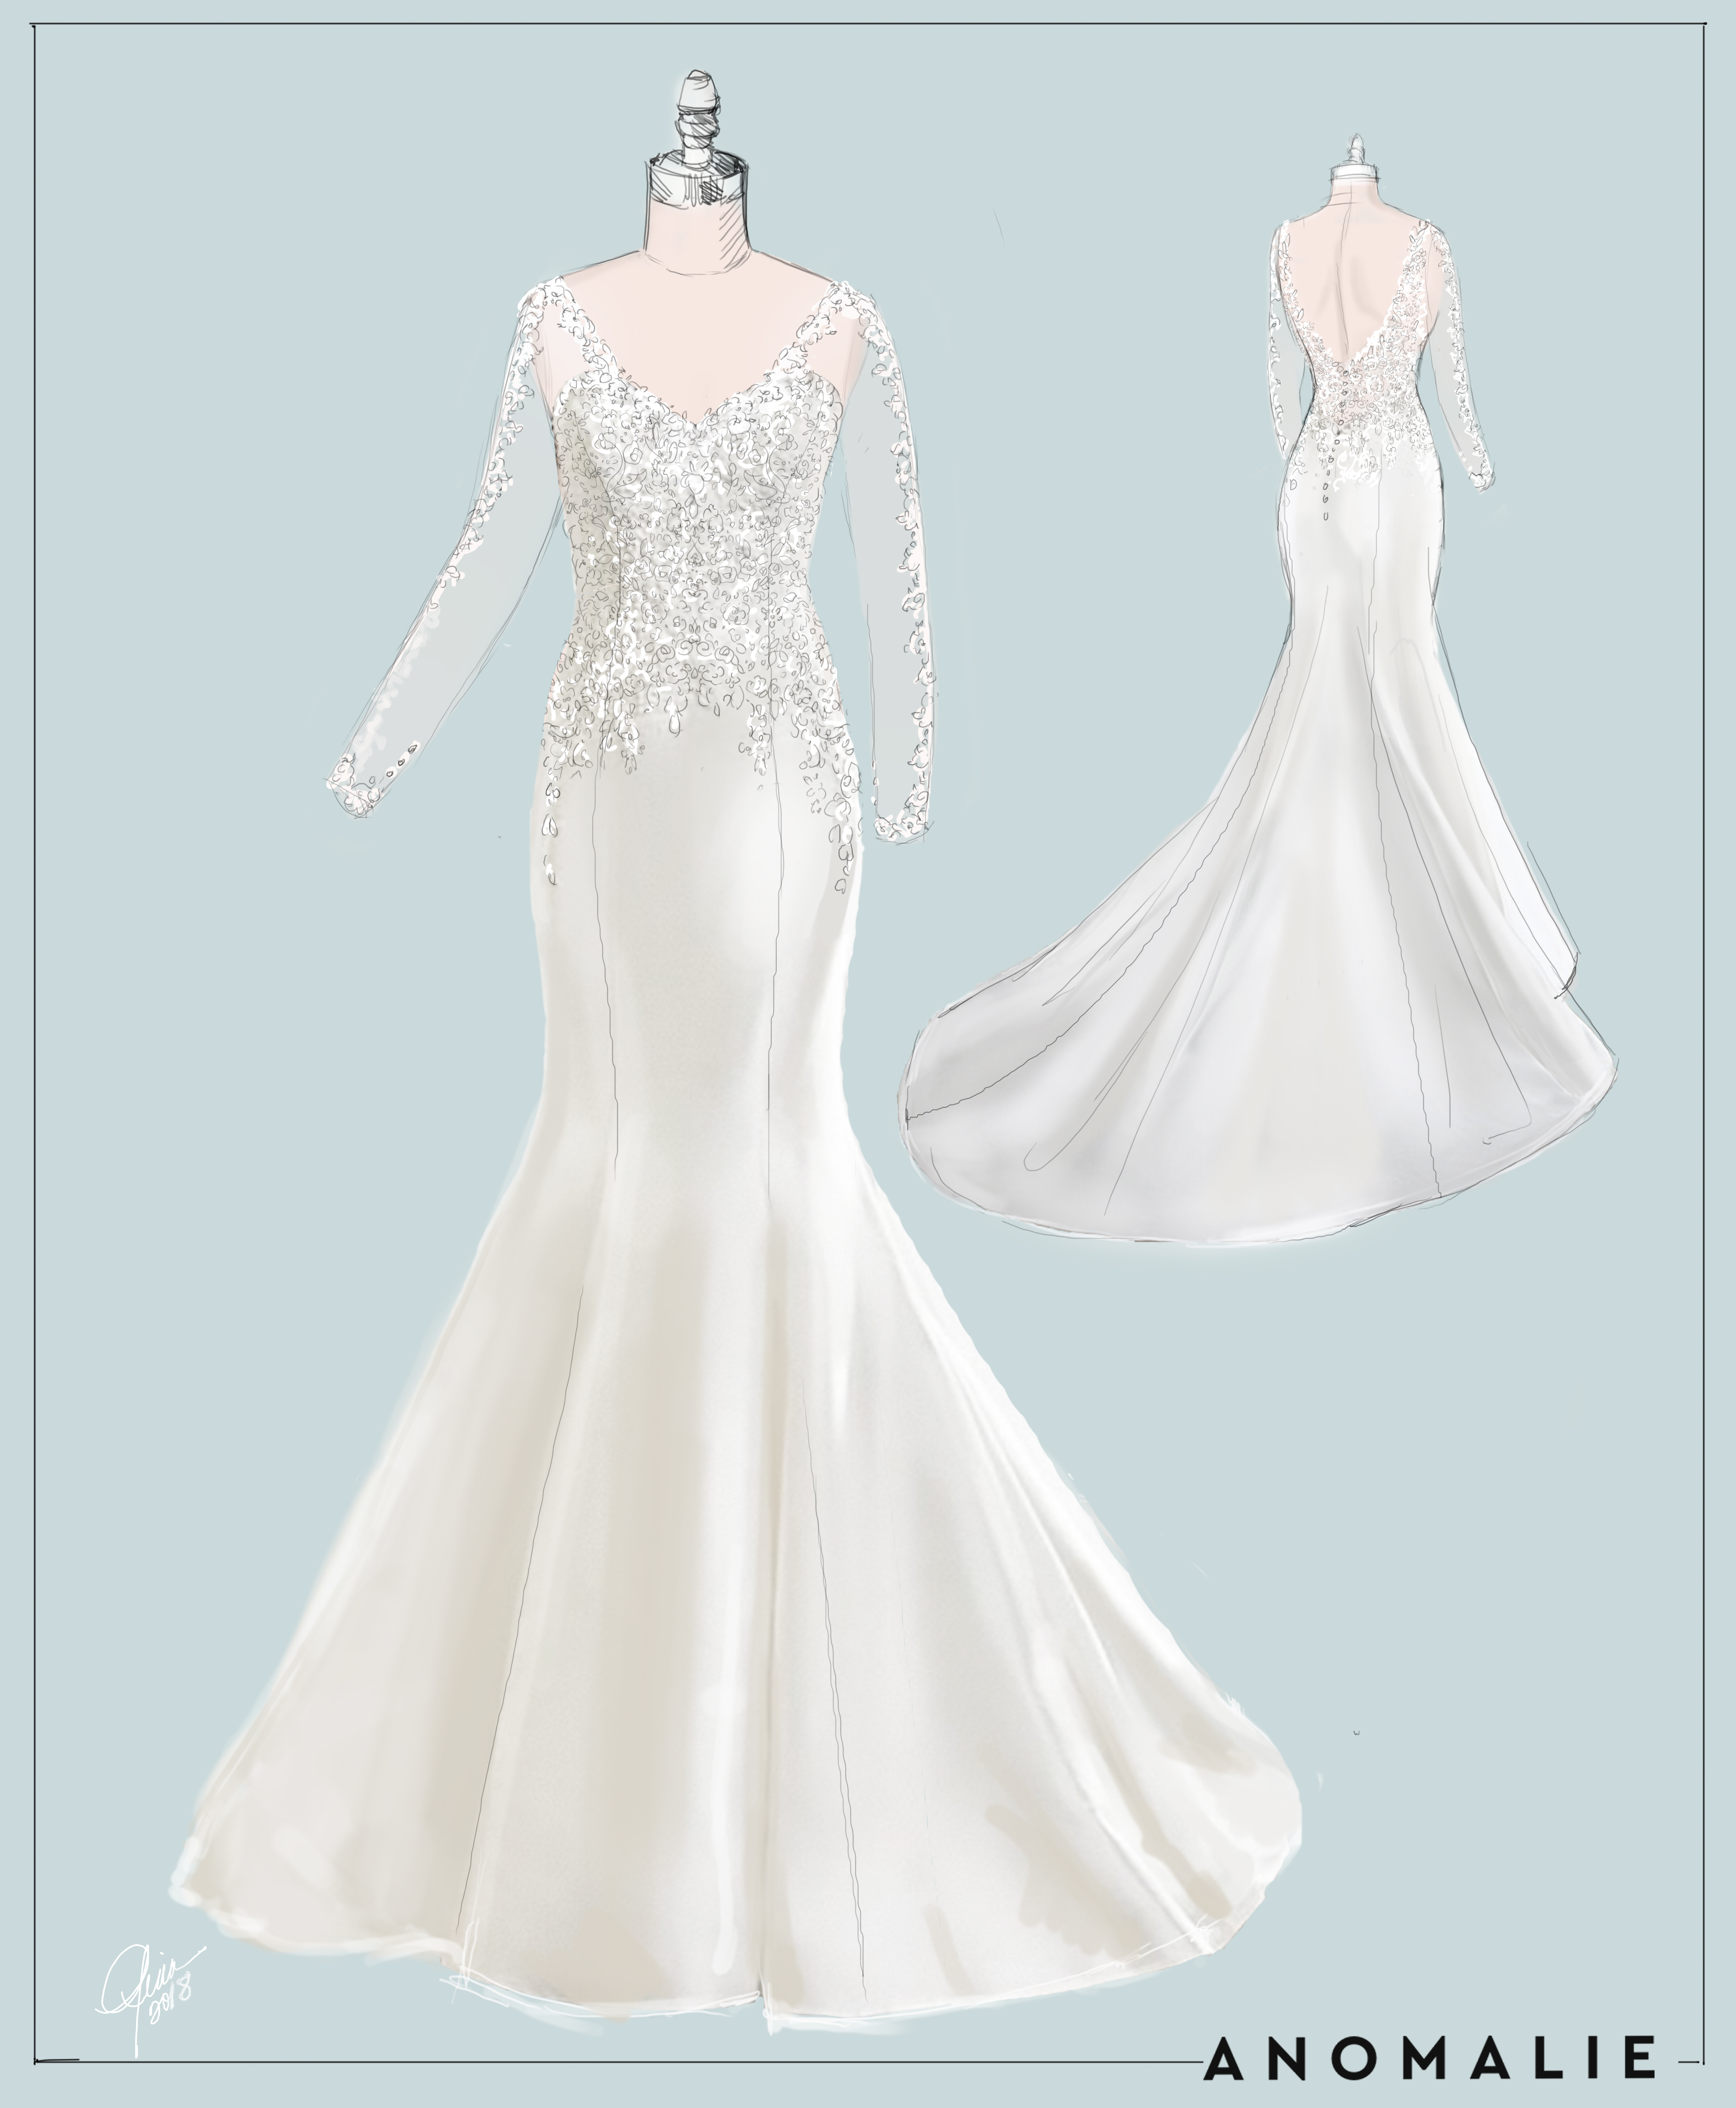 Sketch of custom Anomalie wedding dress with long lace sleeves and fit and flare silhouette